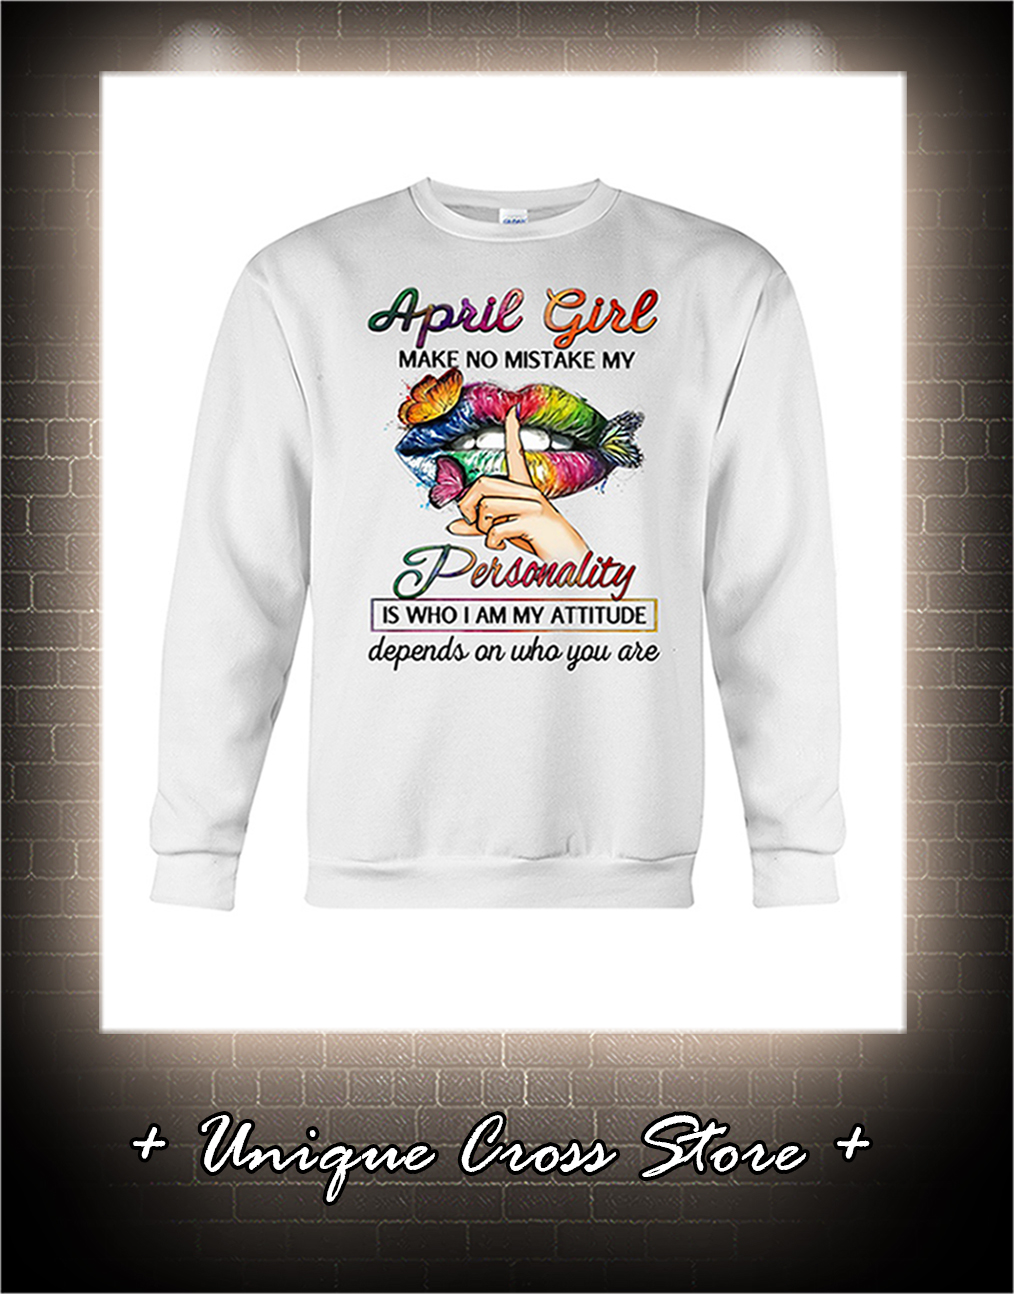 Shut Up Lips Butterfly April Girl Make No Mistake My Personality Is Who I Am My Attitude Shirt